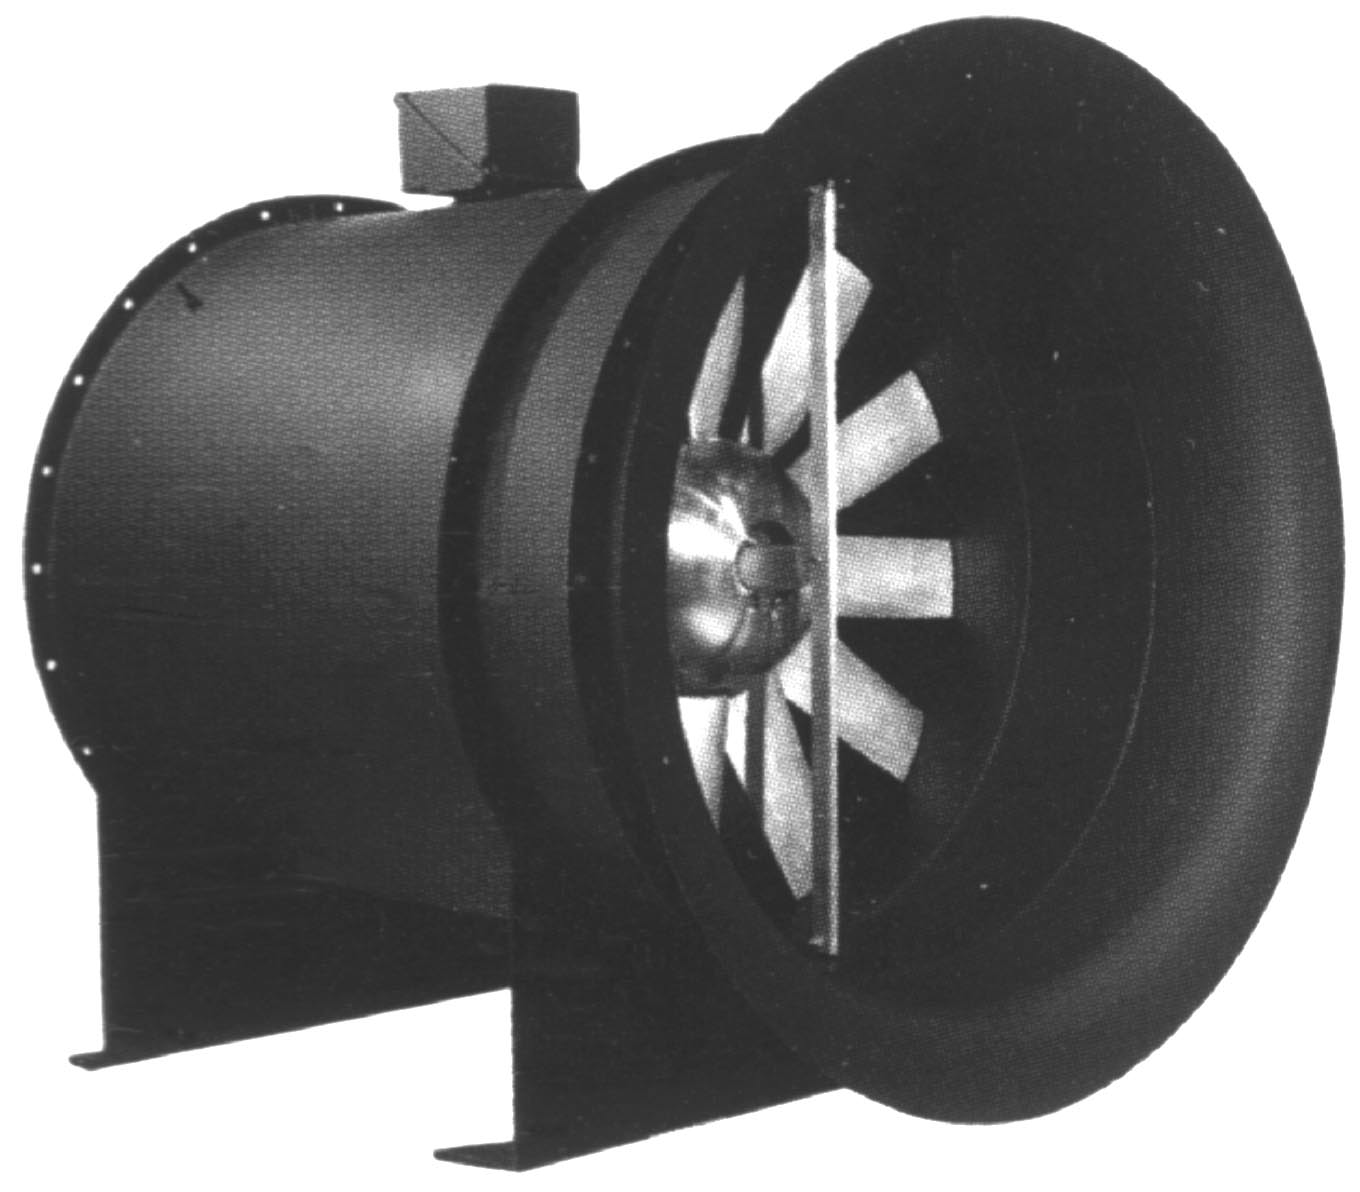 Controllable Pitch Vane Axial Fan Features